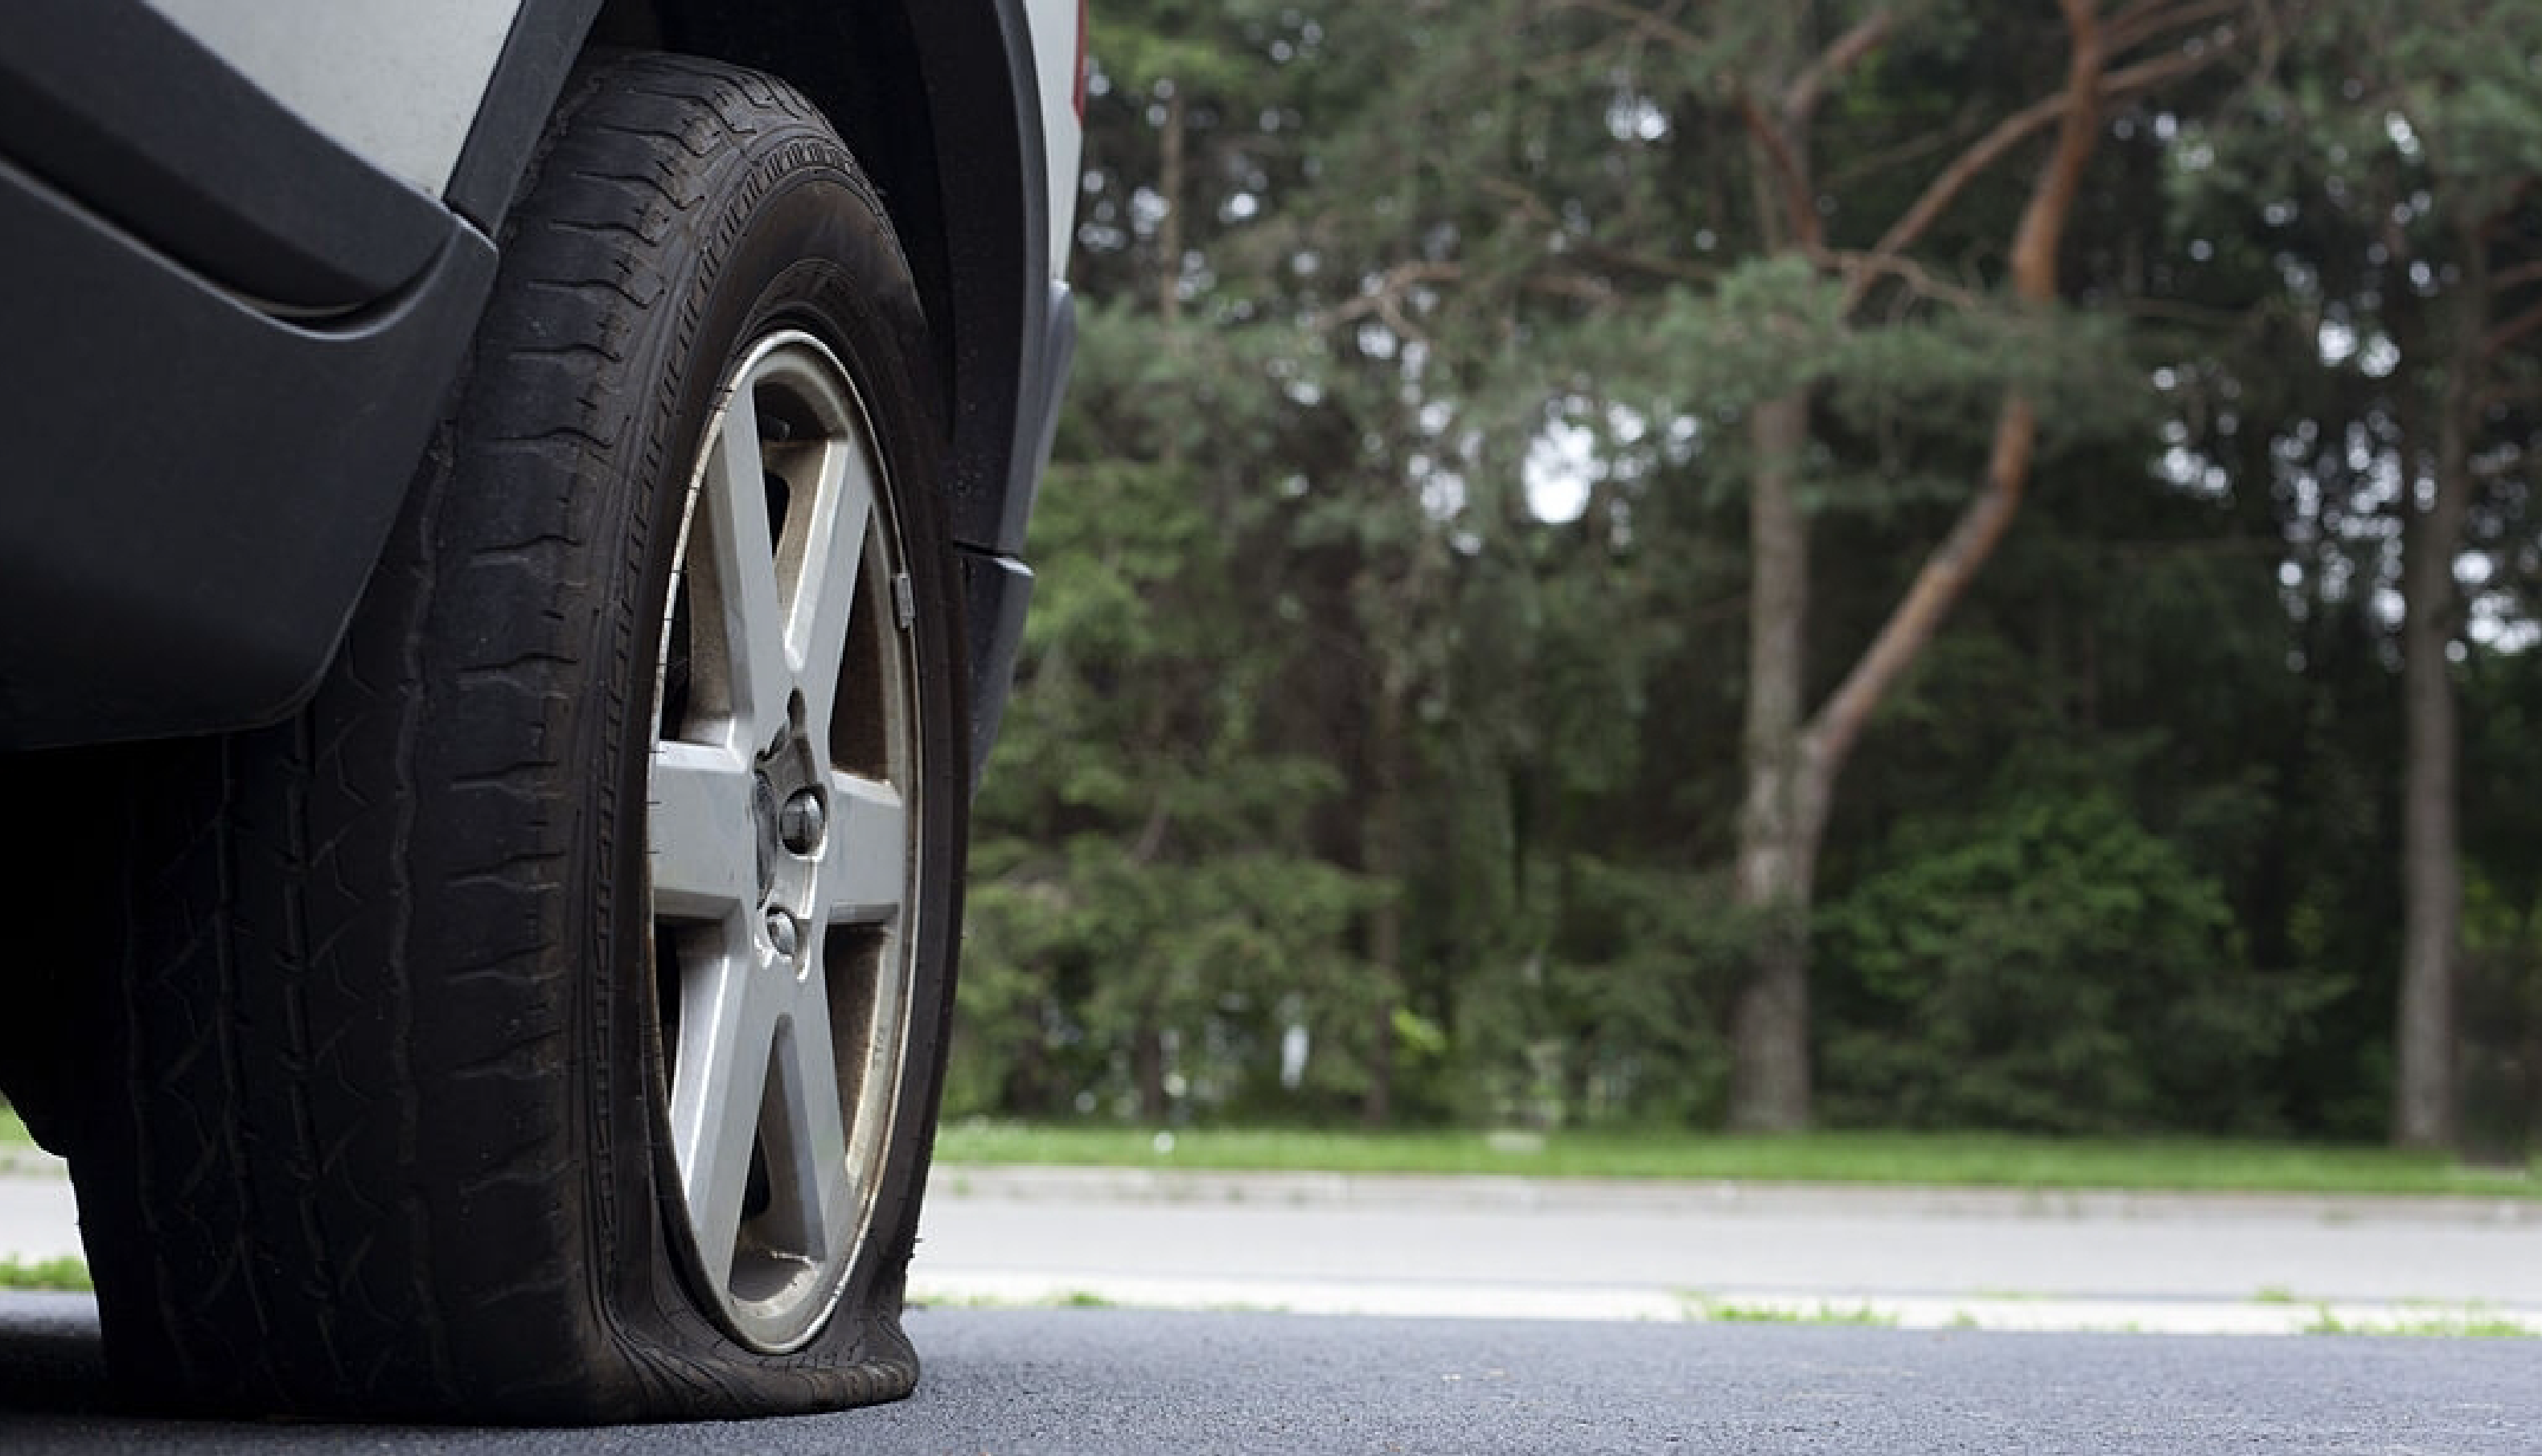 How to Change a Flat Tyre? Know About Run Flat Tyres